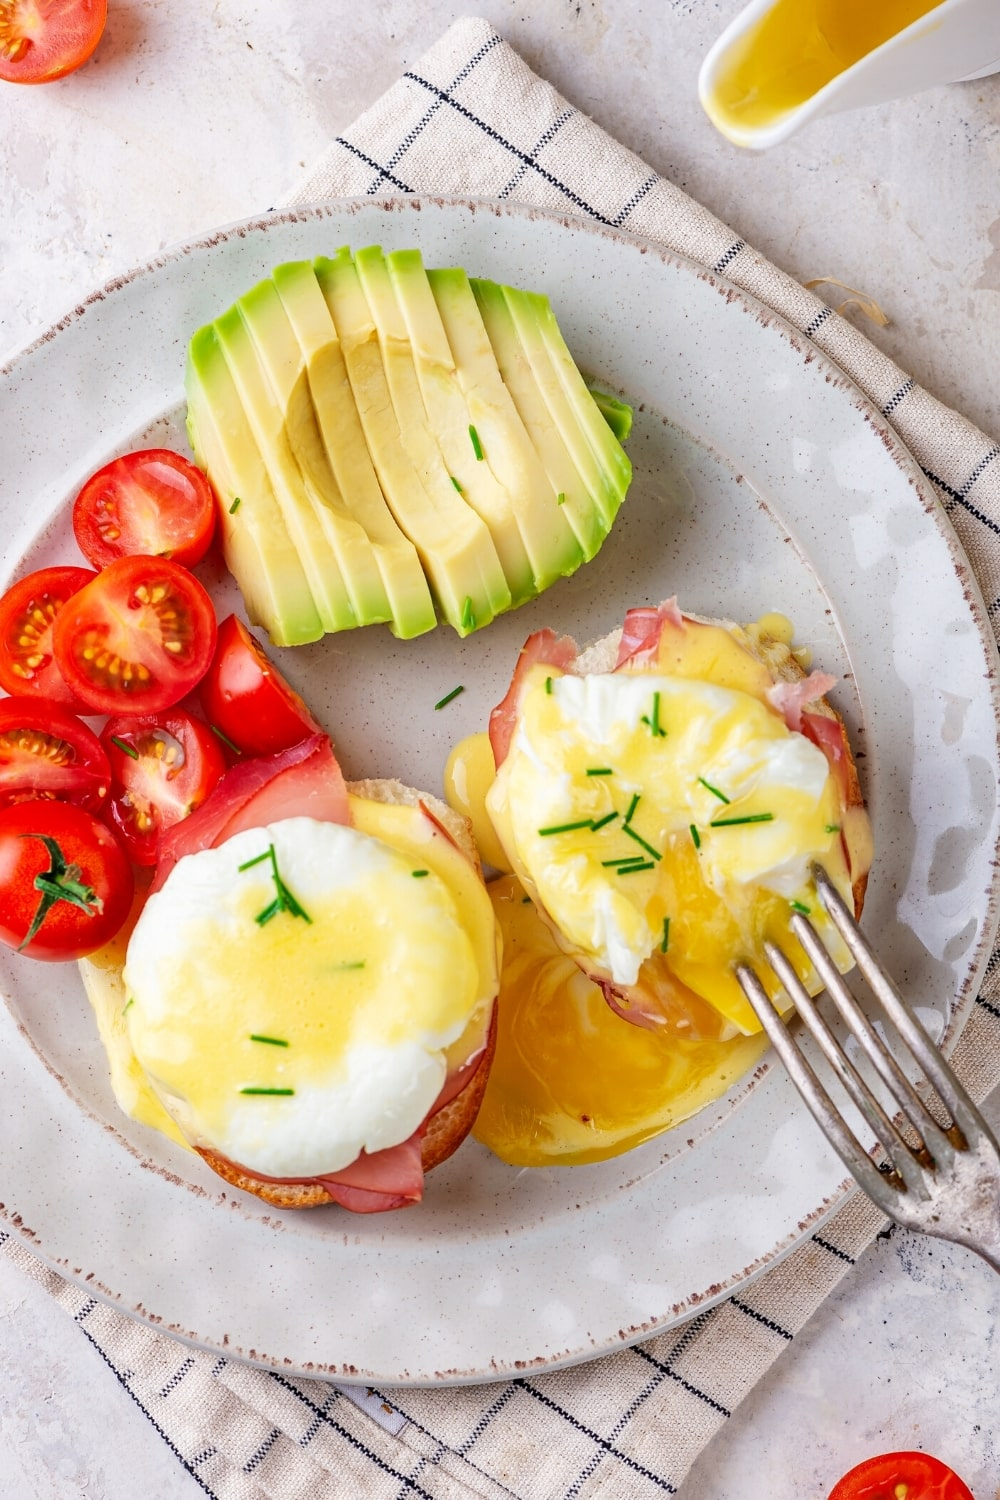 A white plate with two eggs Benedict, a couple of sliced grape tomatoes, and a sliced avocado on it.